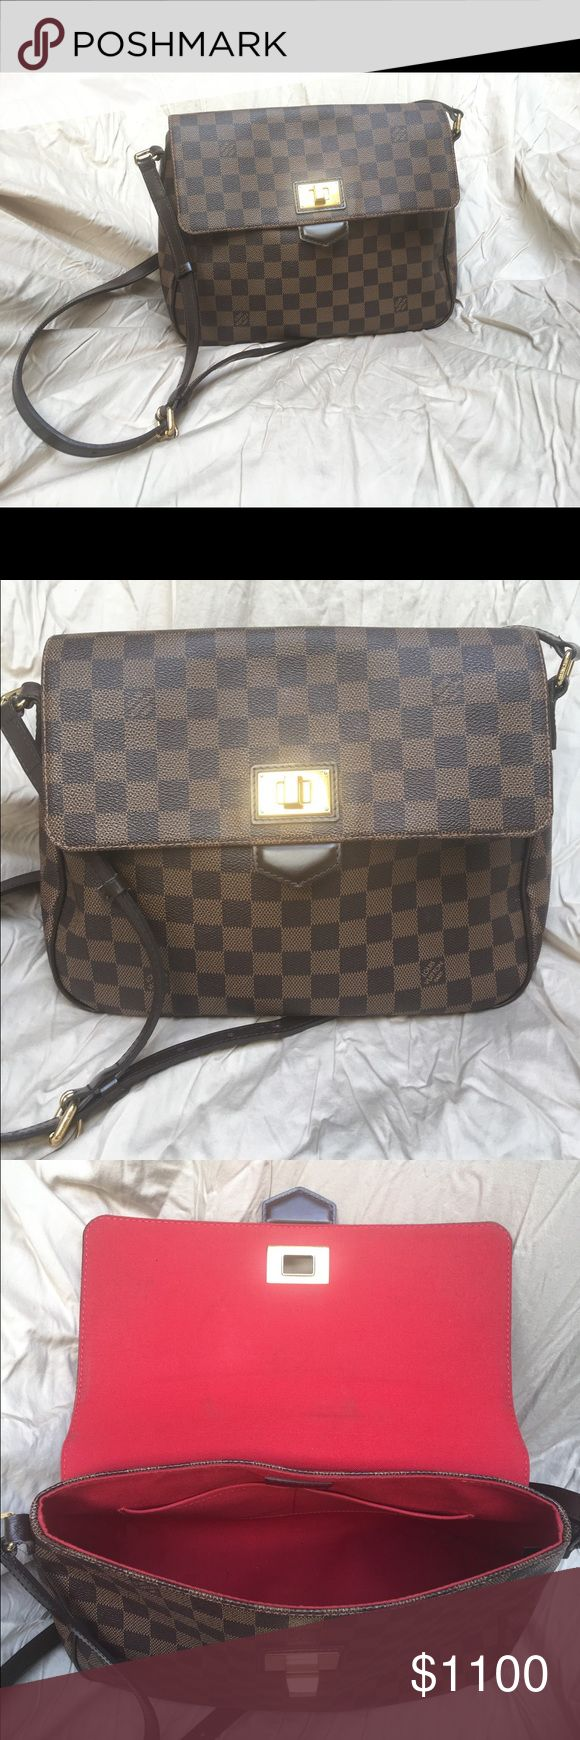 Authentic Louis Vuitton Shoulder Bag Like new Louis Vuitton Shoulder Bag with gold toggle closure. 100% authentic, discontinued style. No stains or marks. No trades. Louis Vuitton Bags Shoulder Bags